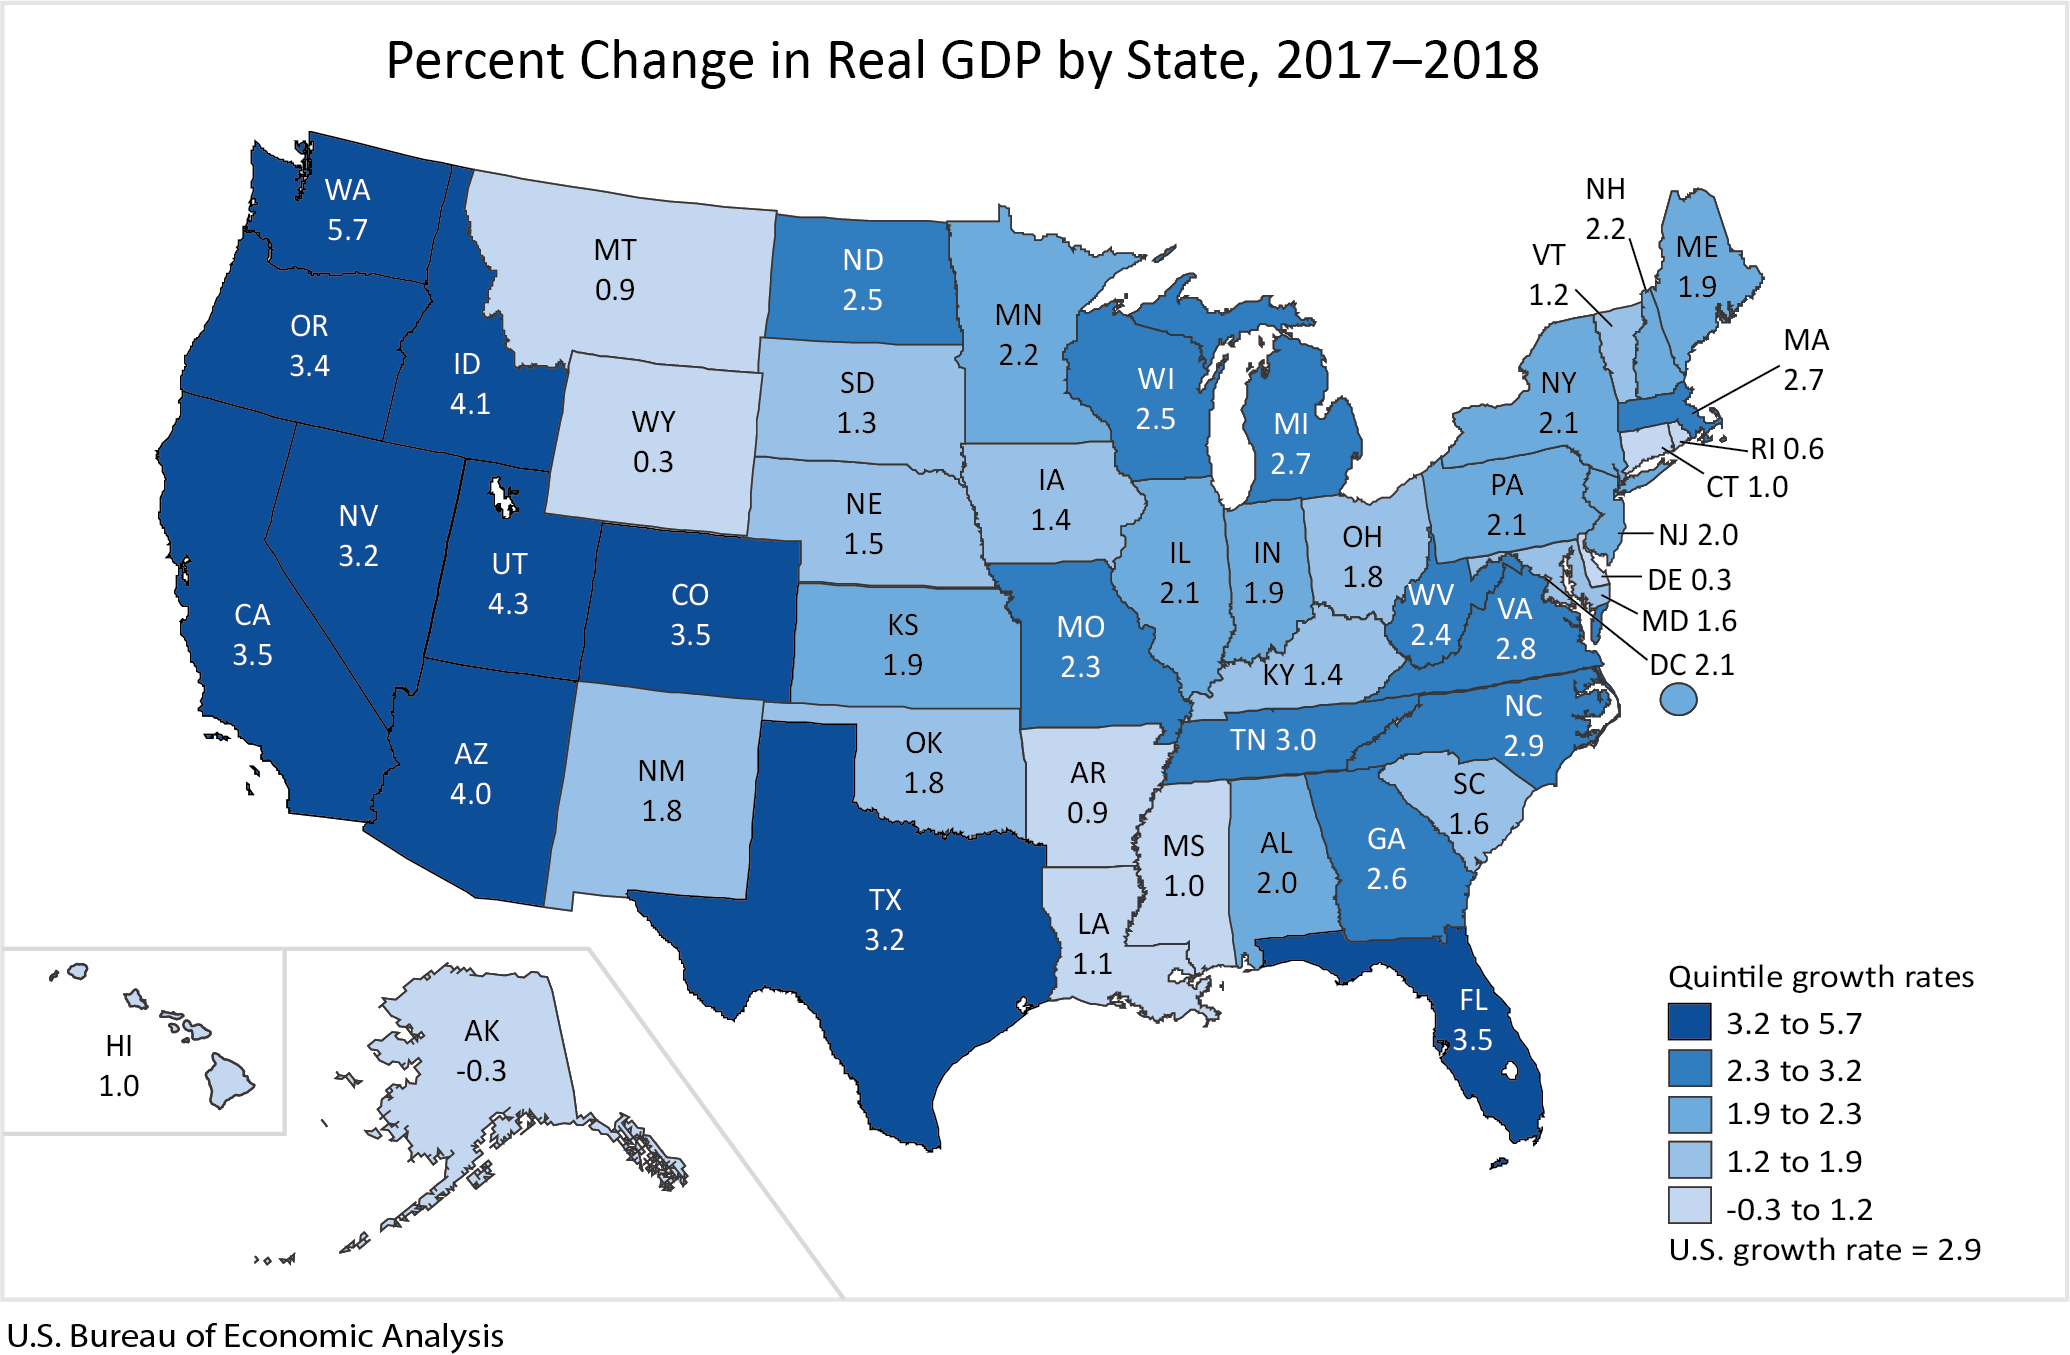 Percent Change in Real GDP by State, 2017-2018